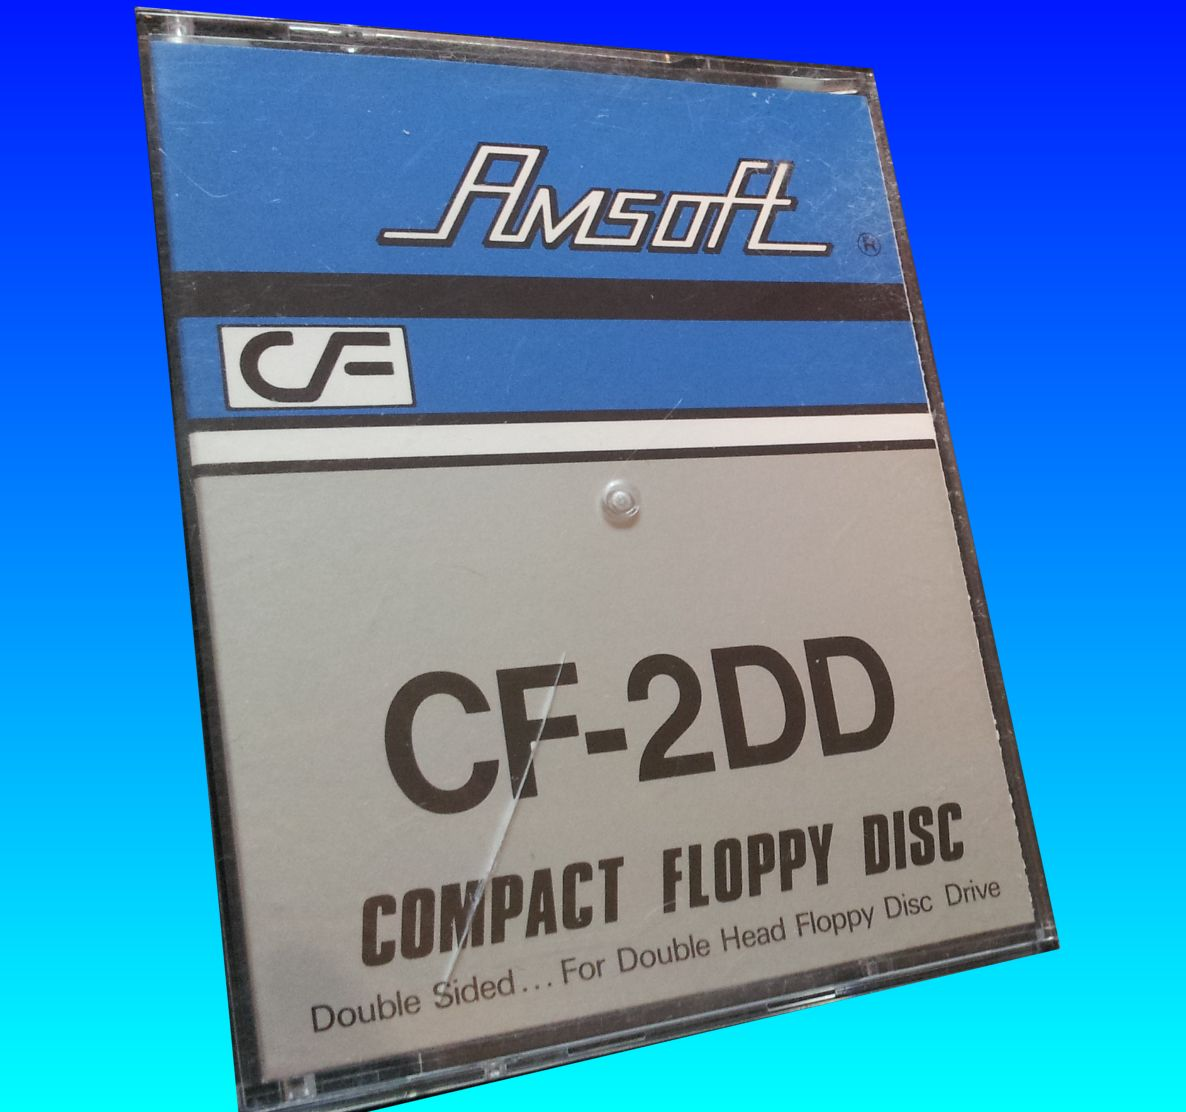 Converting the CF-2DD Amsoft Floppy Disk for Amstrad PCW Word Processor